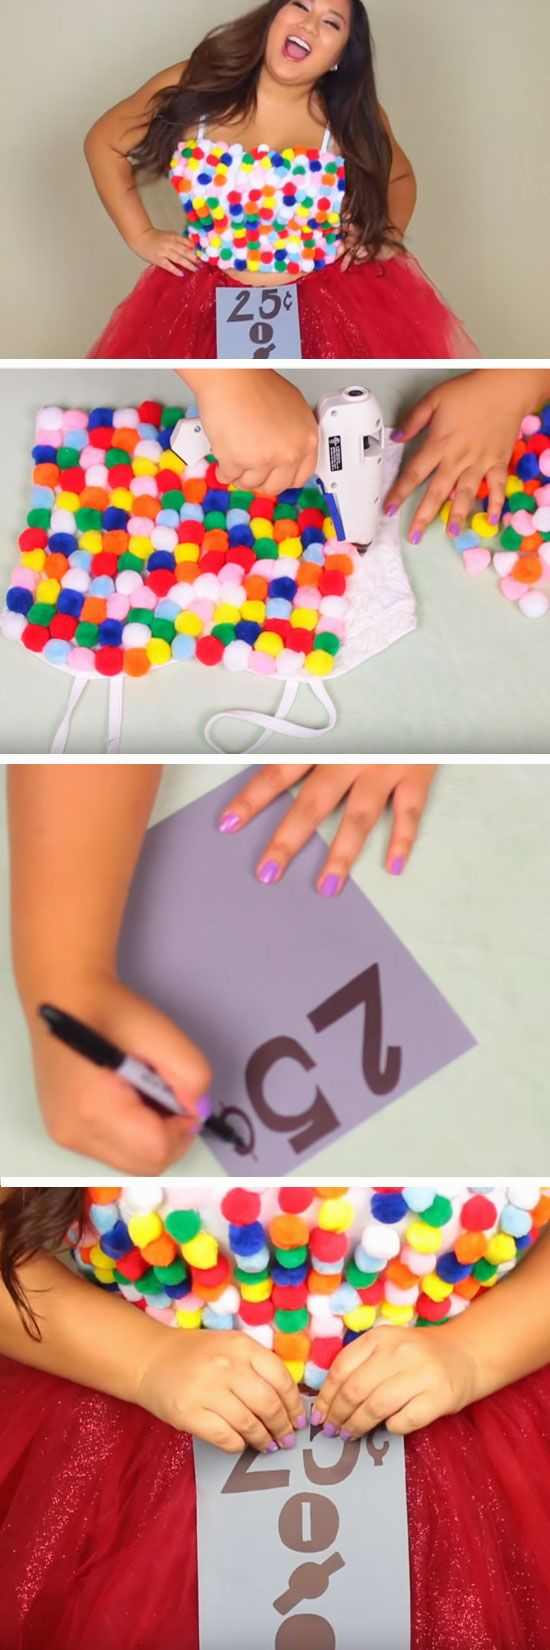 Best 25+ Diy halloween costumes ideas only on Pinterest | Diy ...